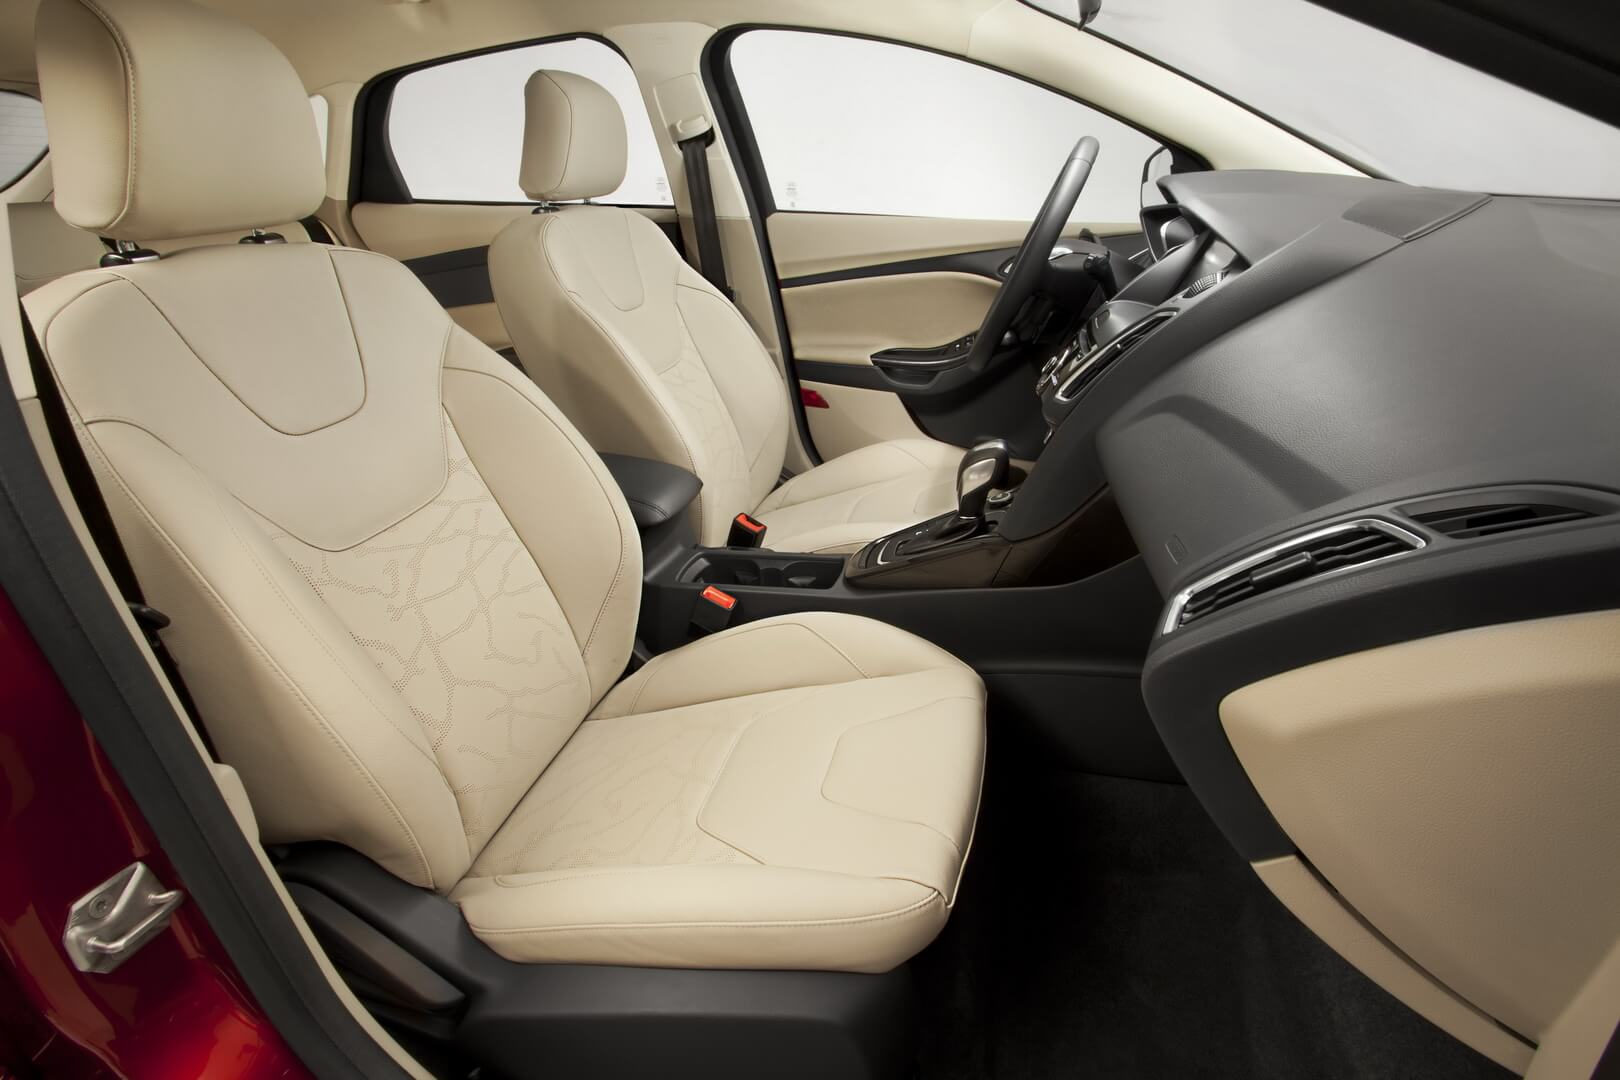 Ford Focus Electric 23kwh-interior-3